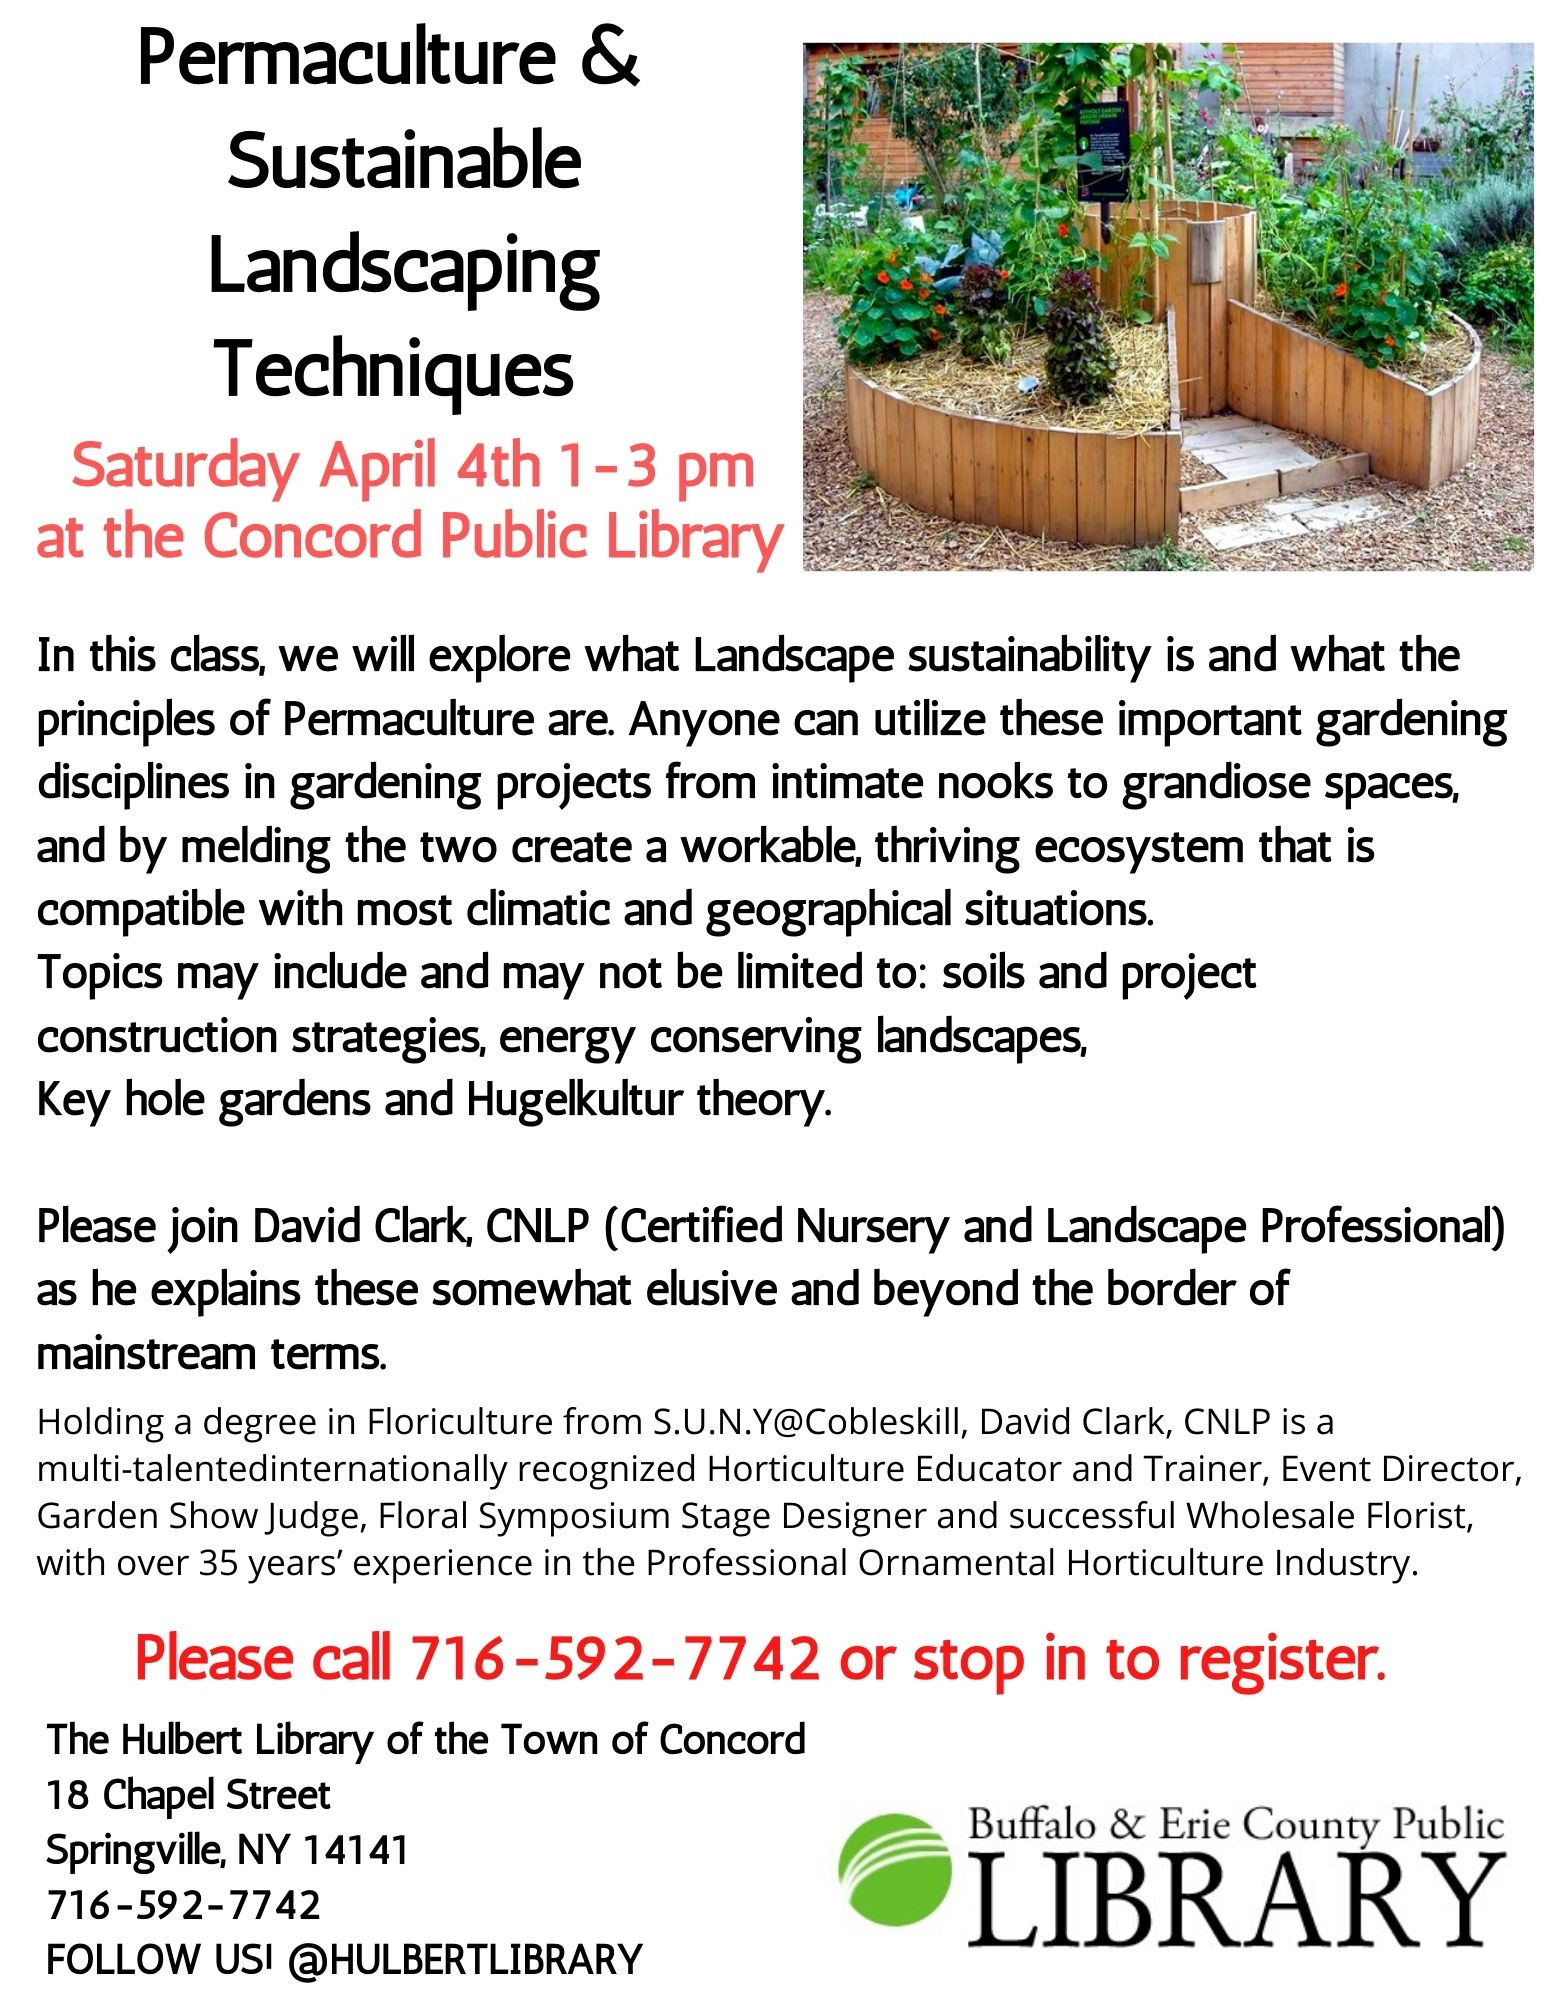 Postponed: Permaculture and Sustainable Landscaping Techniques